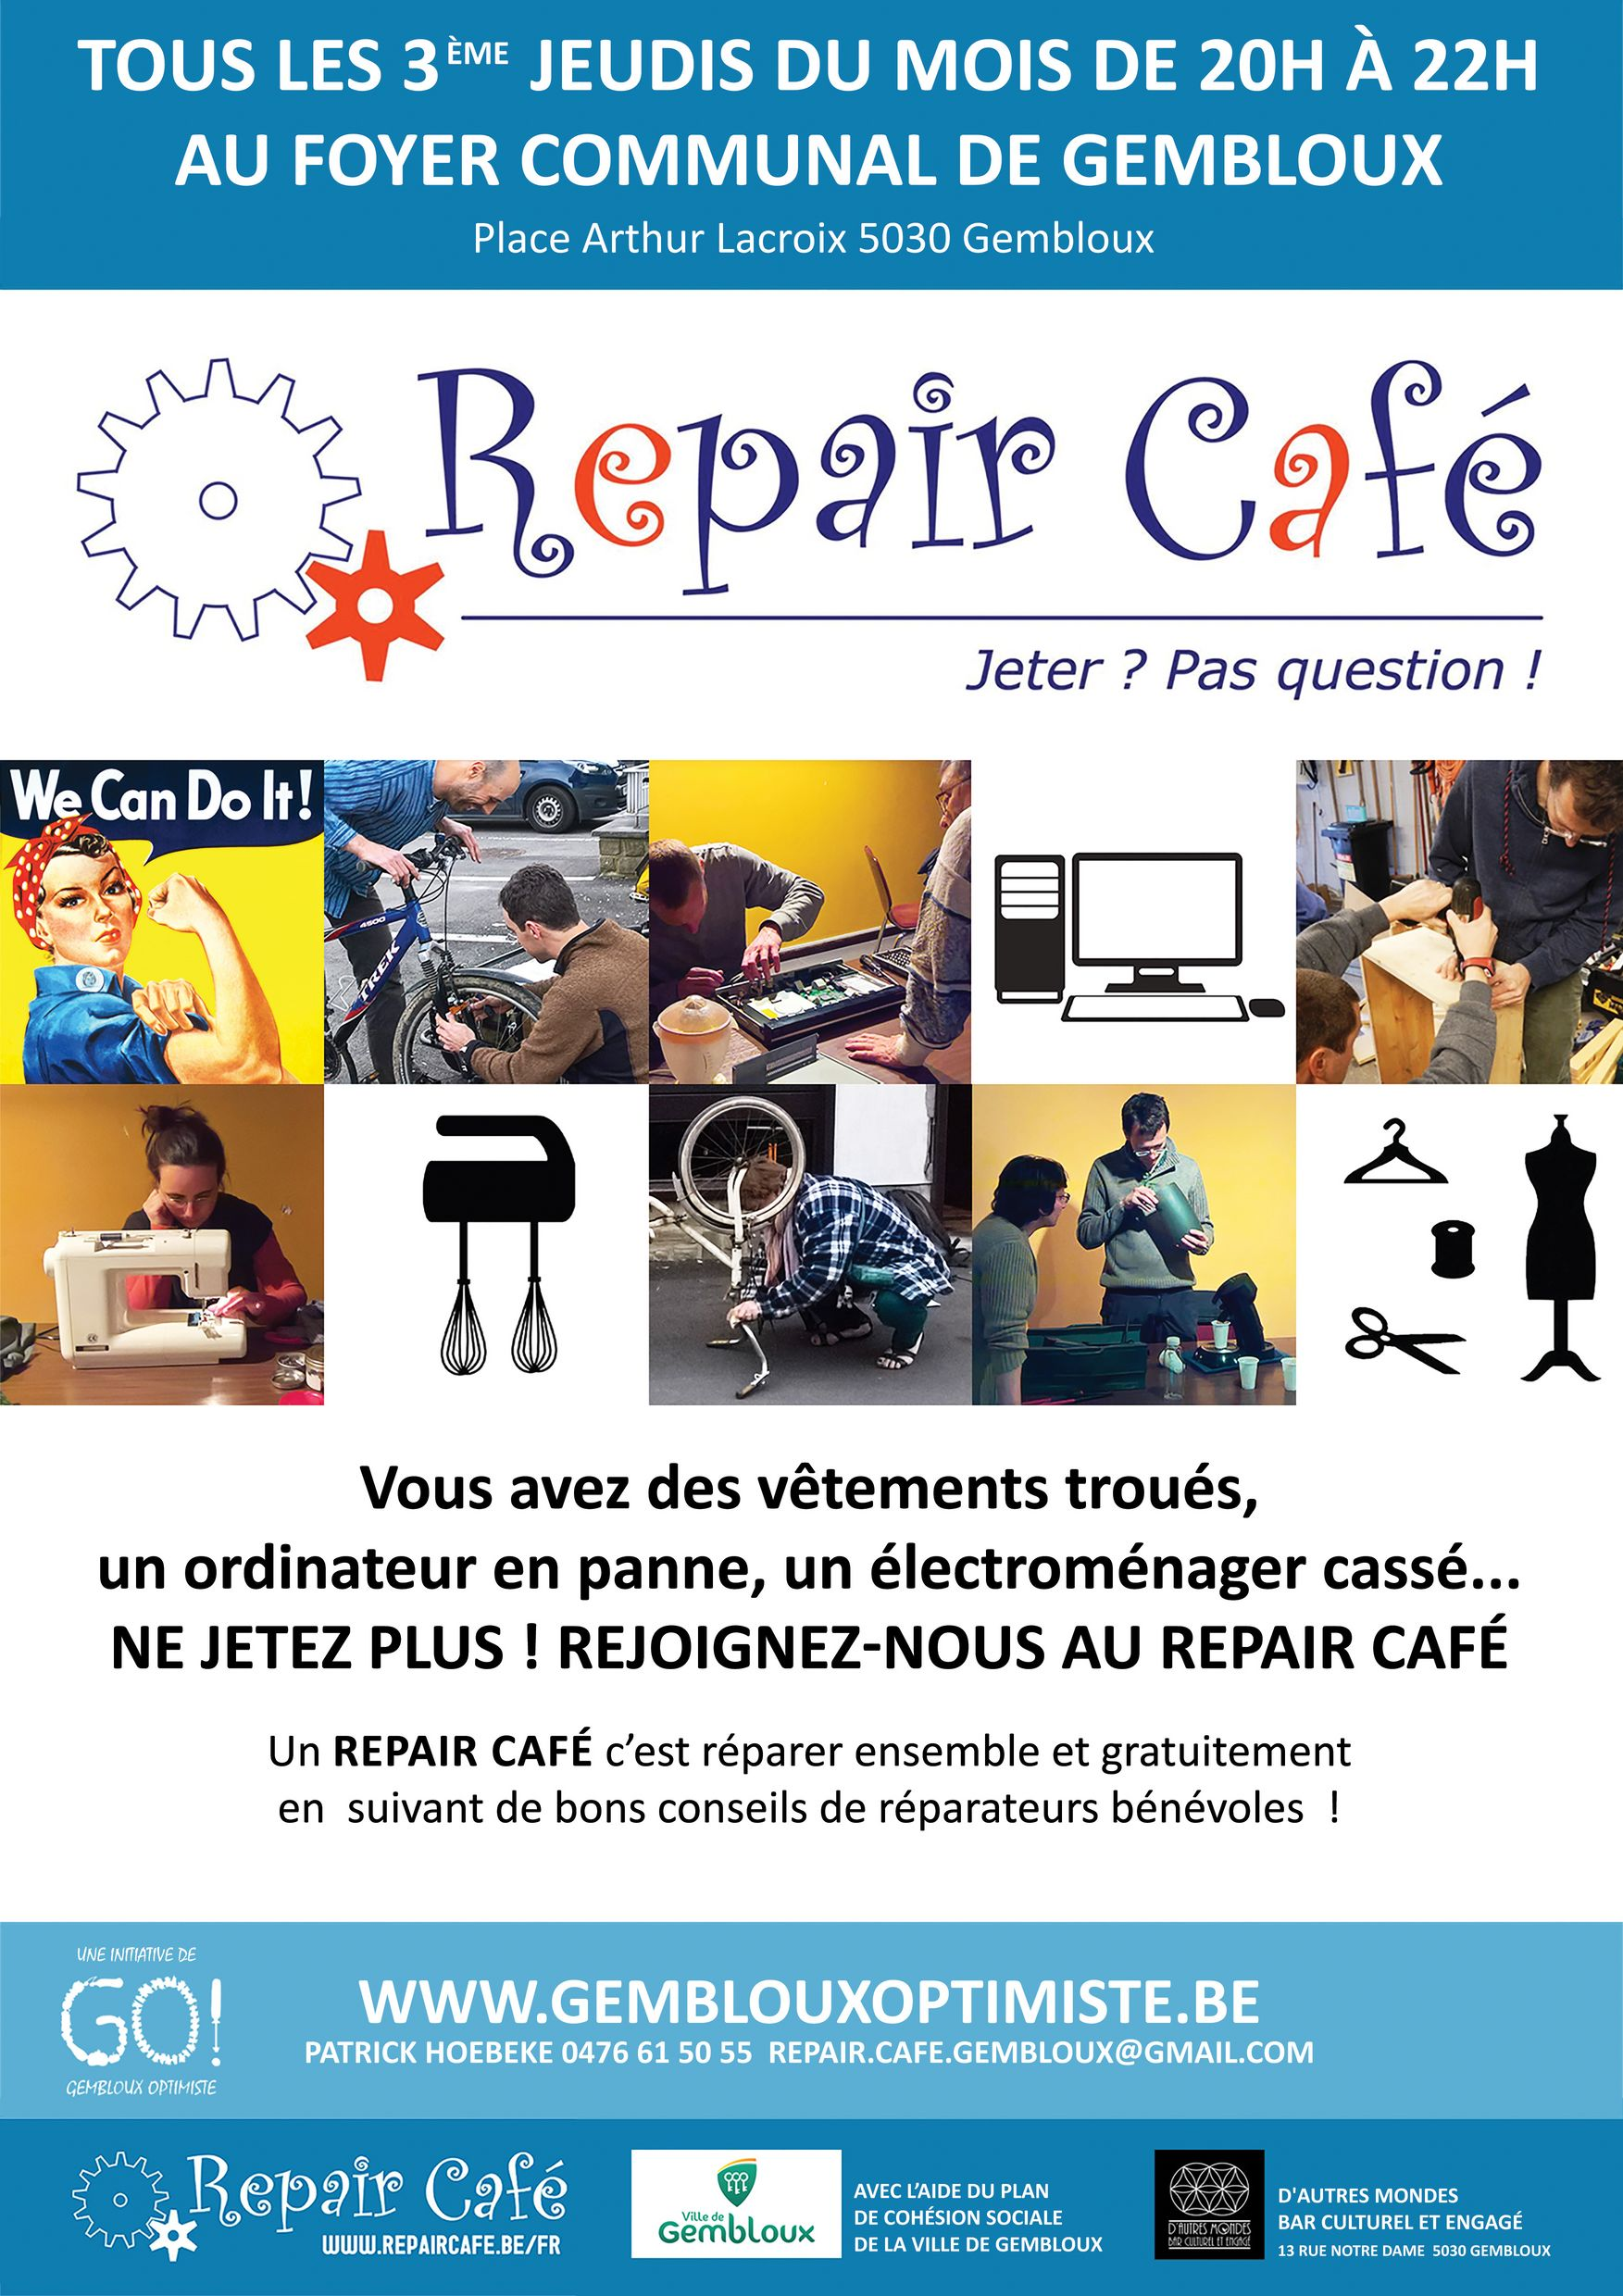 Repair café @ Foyer communal Gembloux